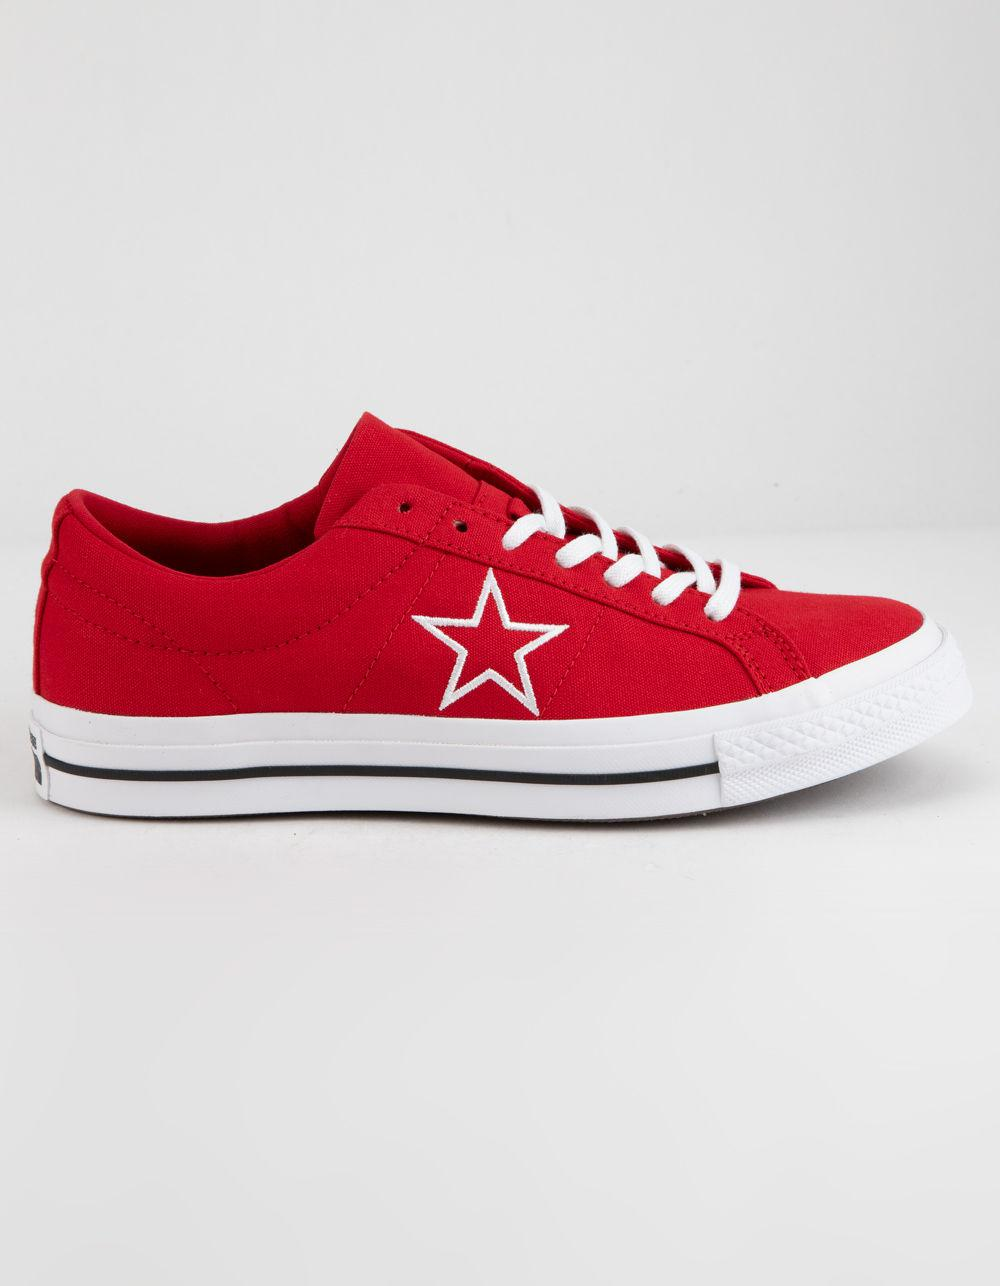 9be98338349292 Lyst - Converse One Star Ox Enamel Red   White Low Top Shoes in Red